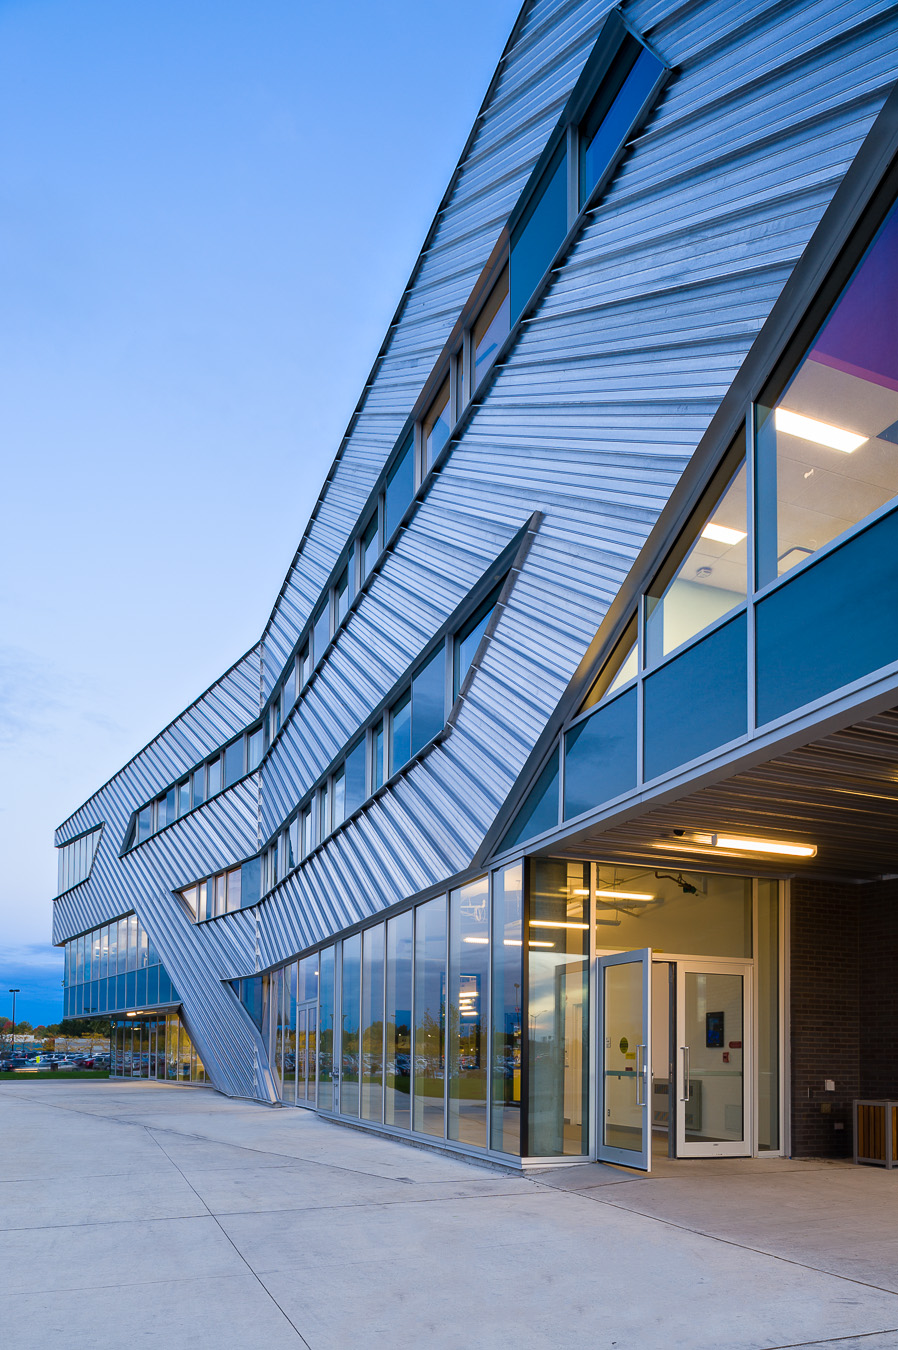 19-Teeple architects algonquin student commons toronto architectural photography canada.jpg